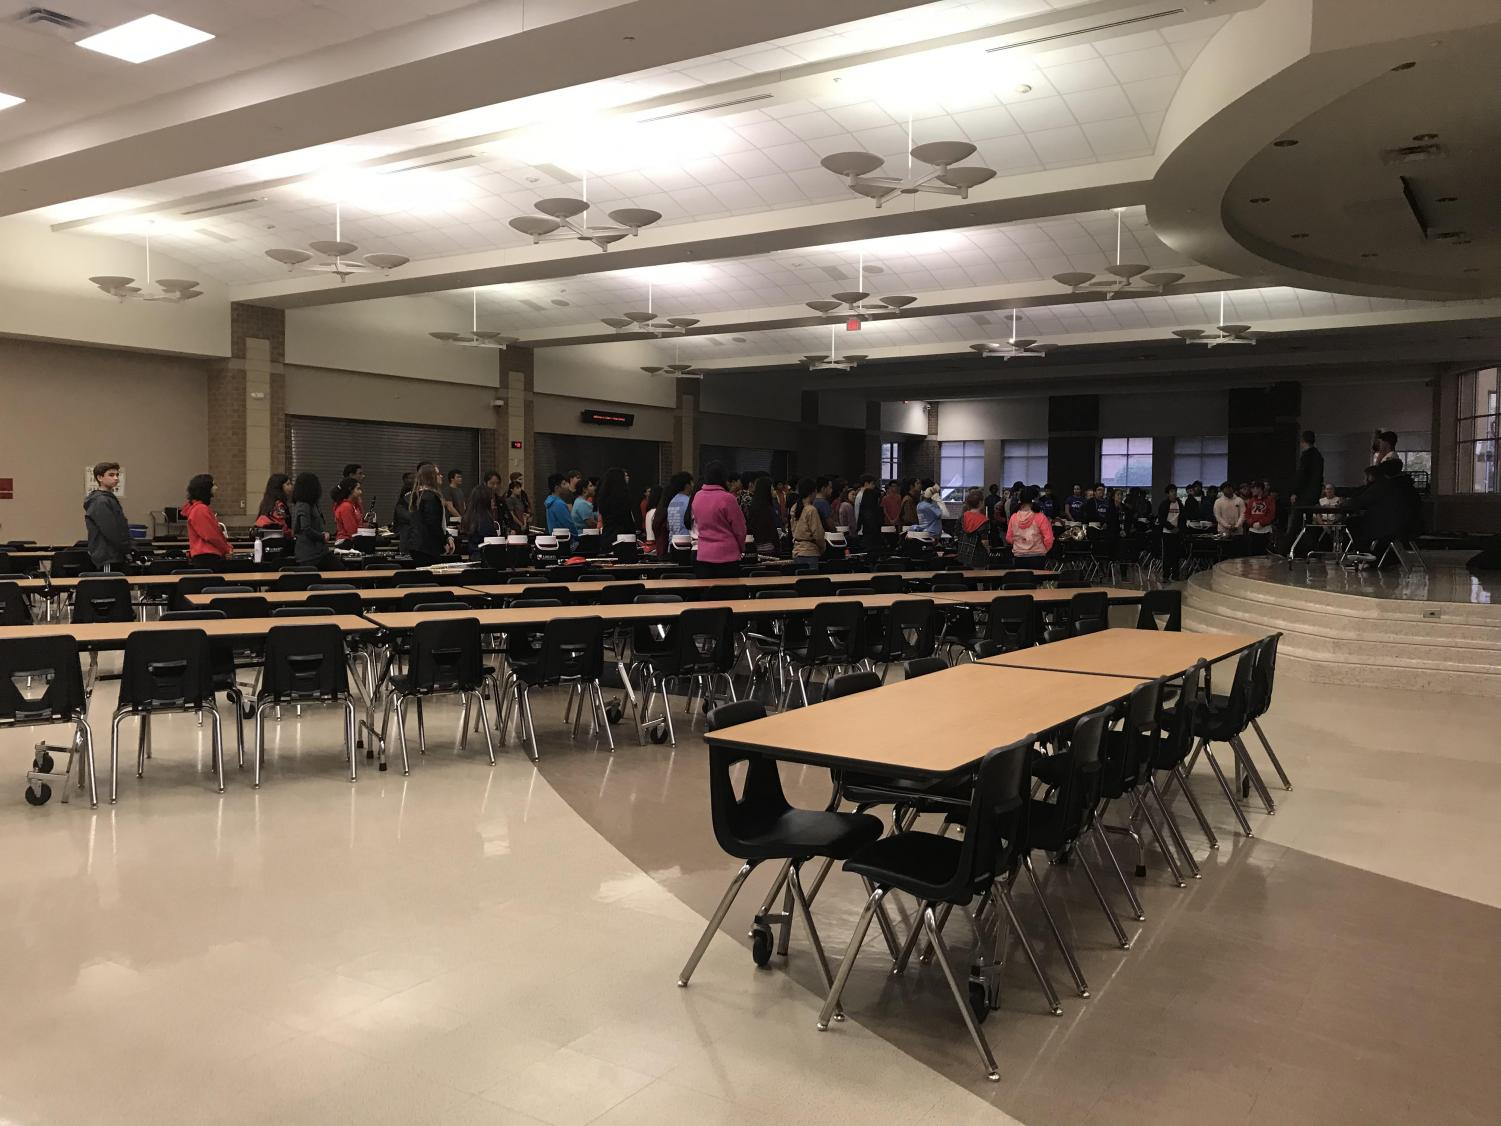 Band was forced to relocate their practice after school on Monday into the cafeteria due to harsh weather conditions outside as well as limited space on campus.